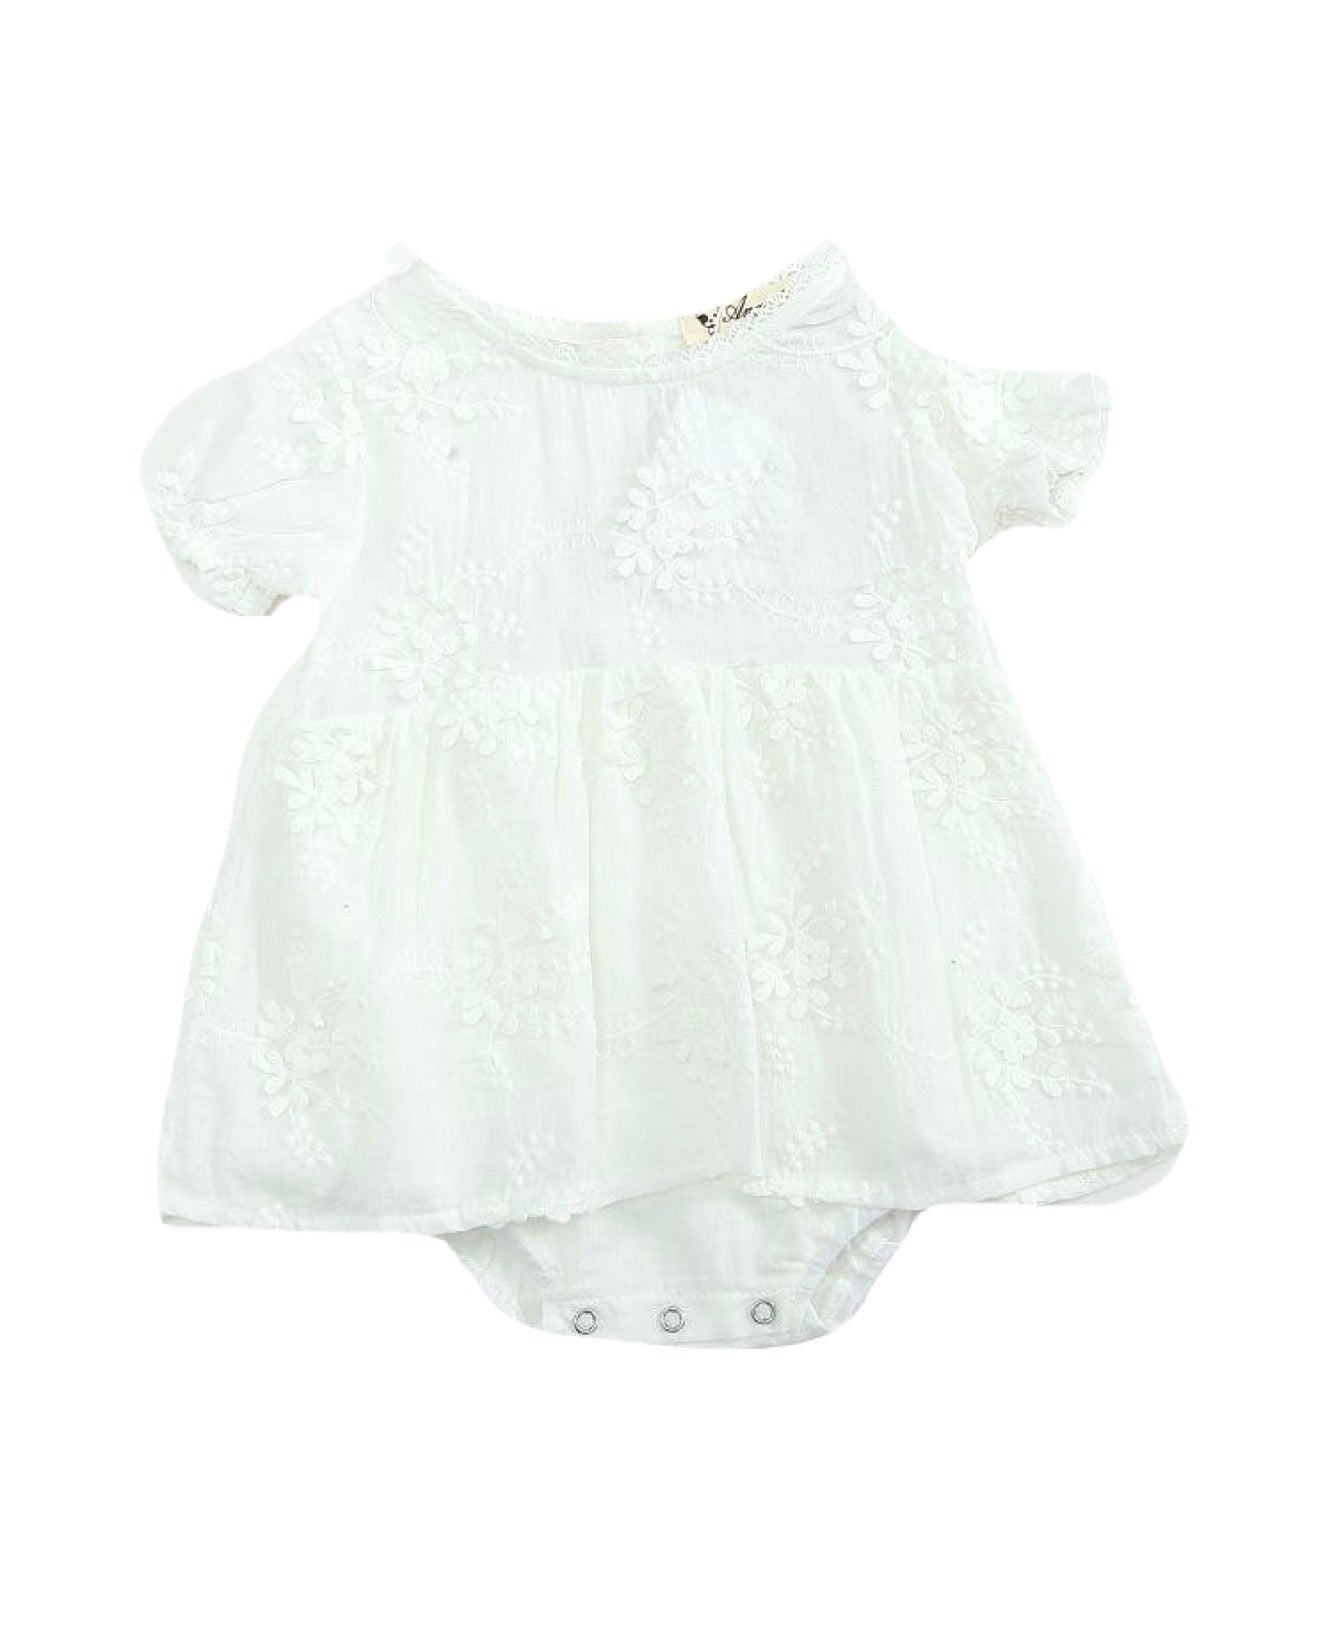 'Rai-lee'- embroidered light weight cotton playsuit- short sleeve